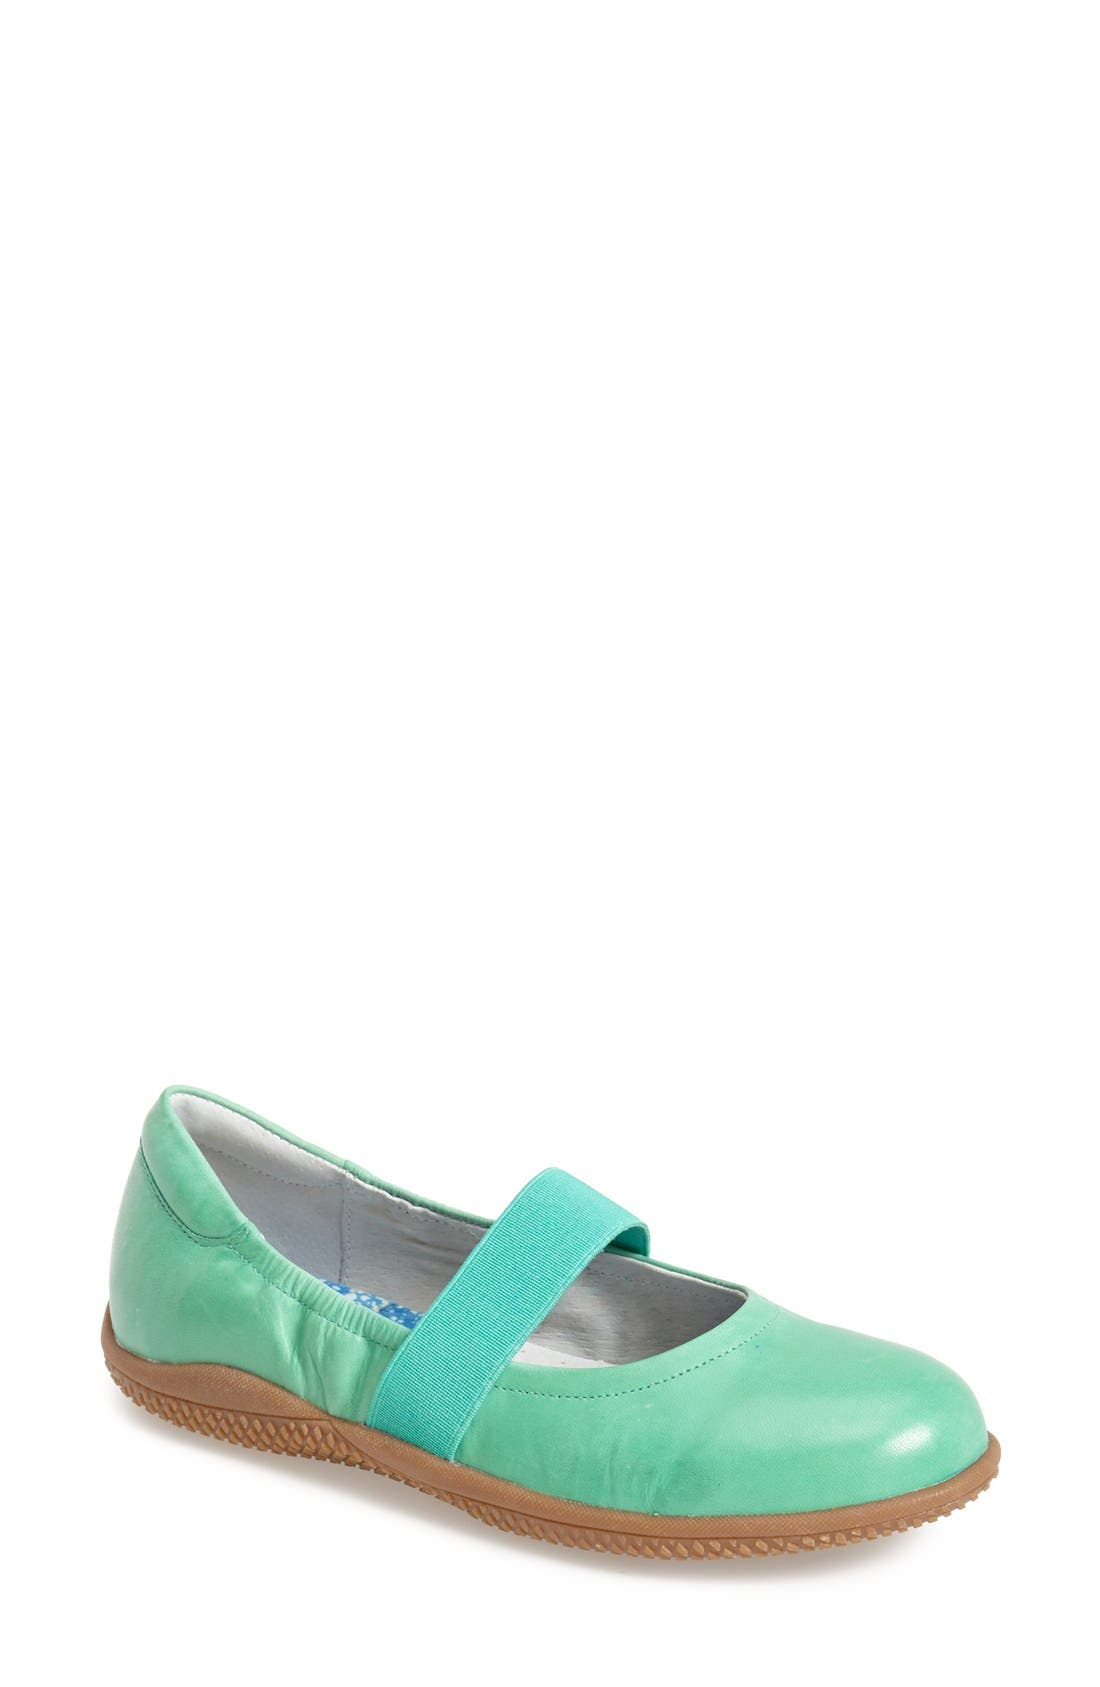 'High Point' Mary Jane Flat,                         Main,                         color, 300